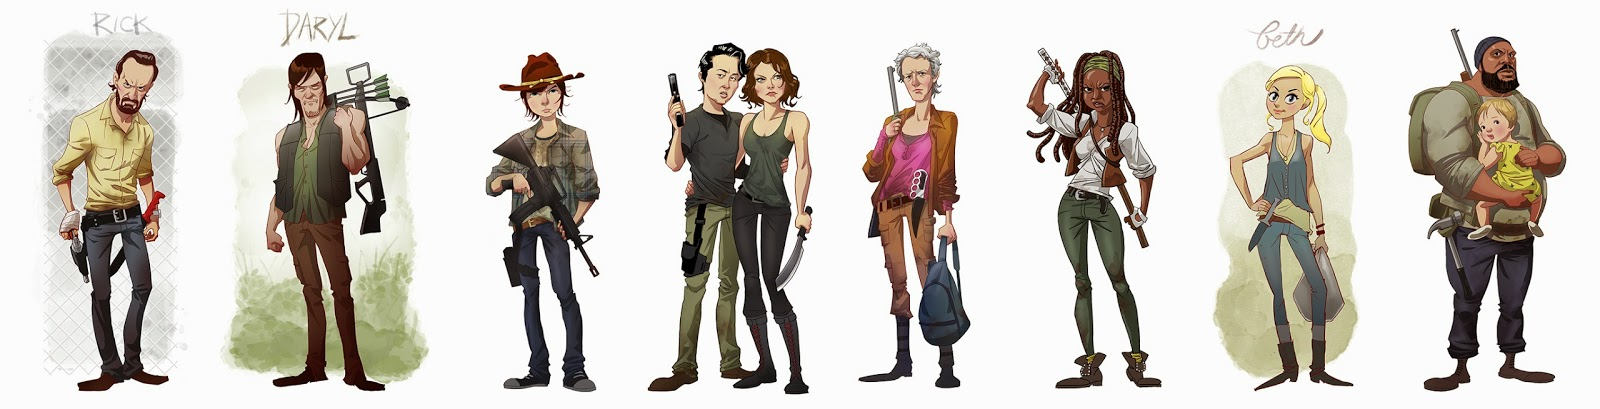 The Walking Dead (by Edward Pun)